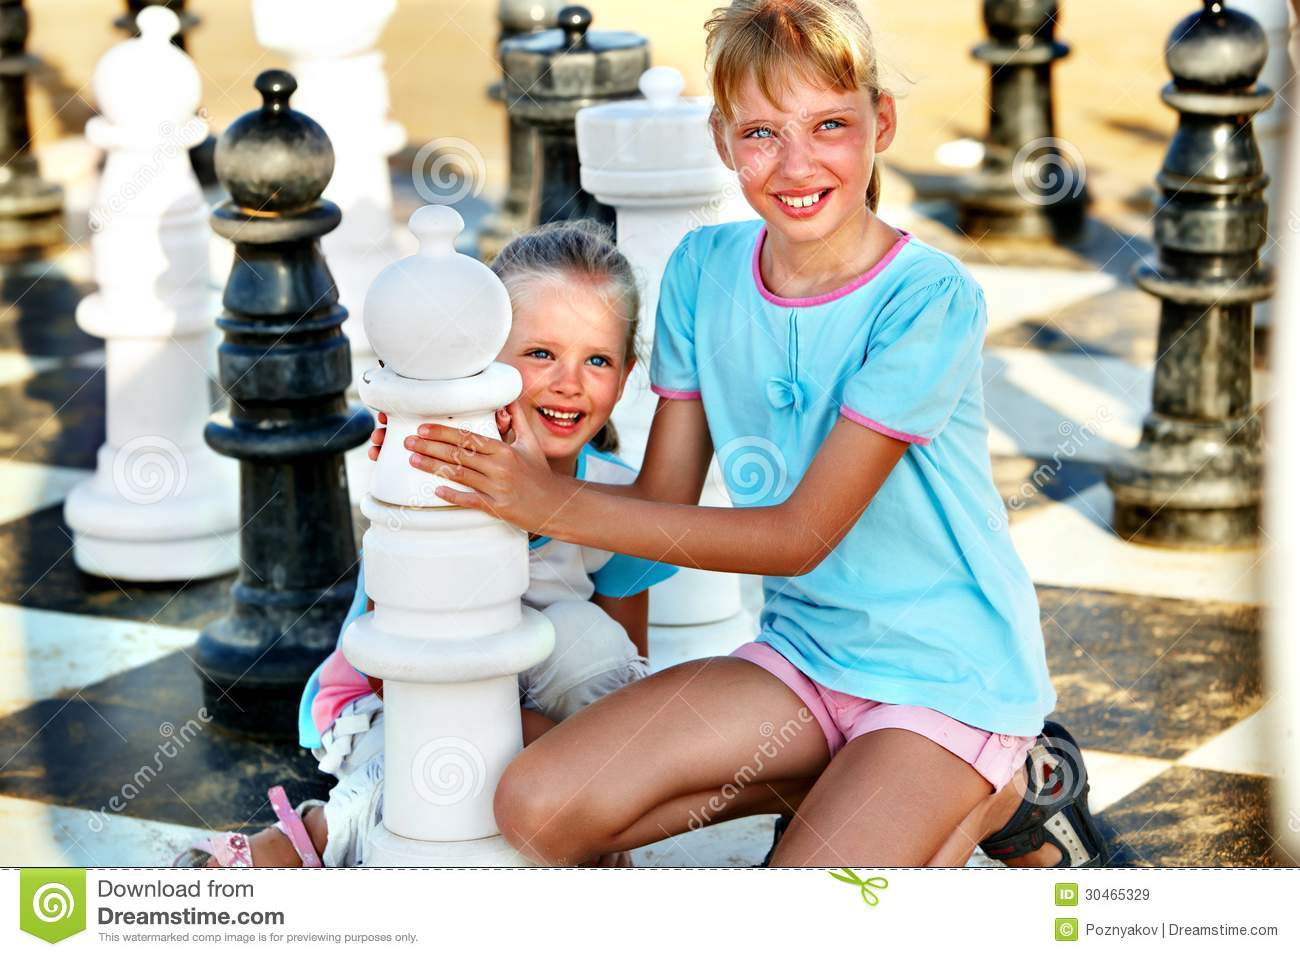 play chess free kids no download